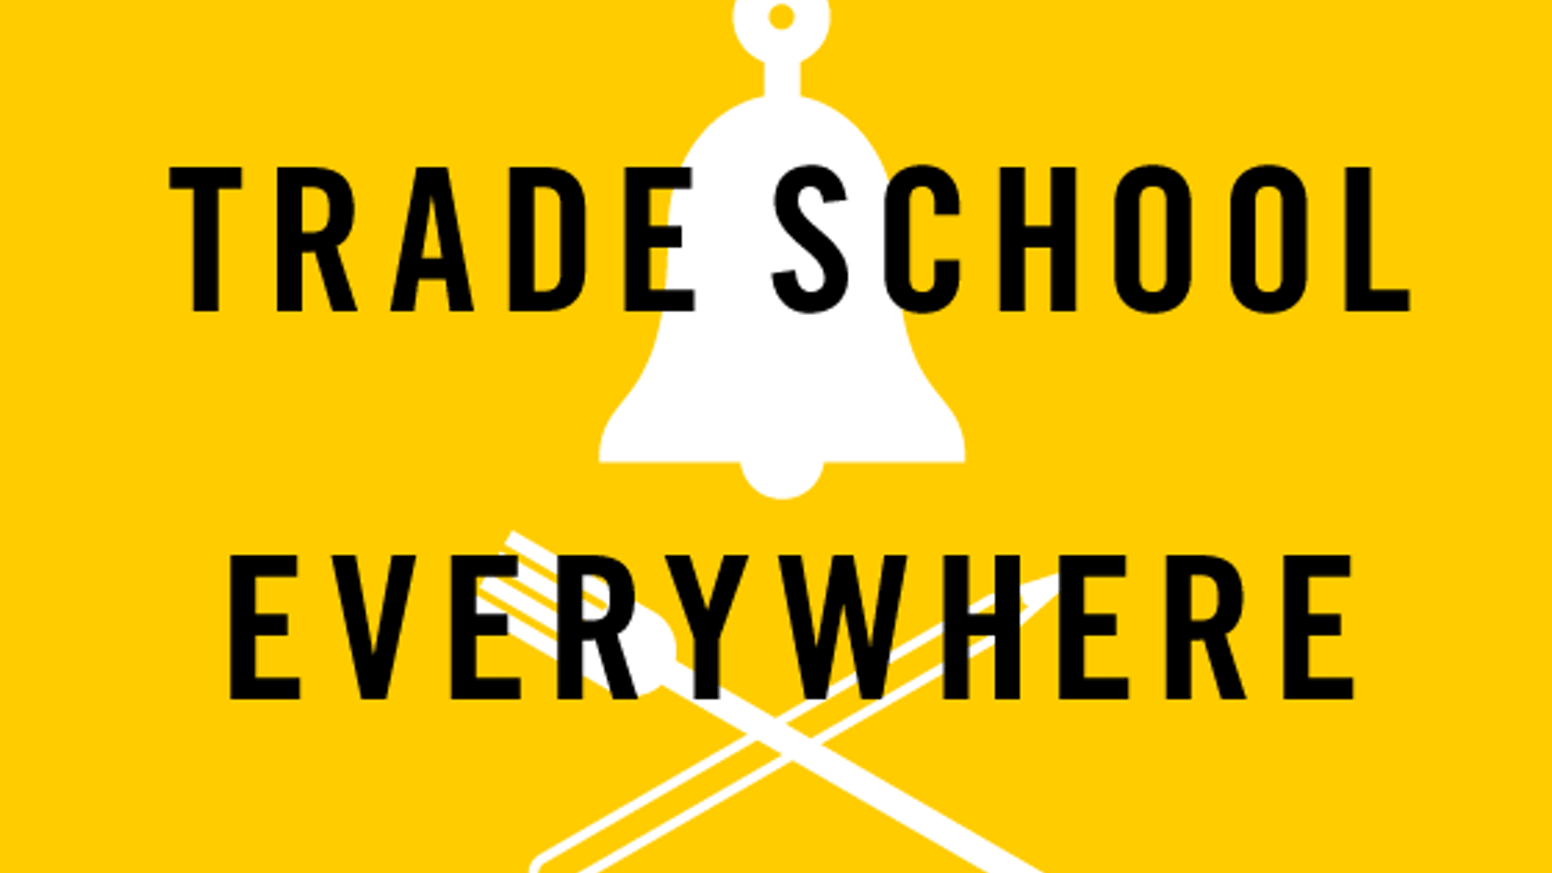 Trade School Learning Spaces That Run On Barter By Ourgoodsorg